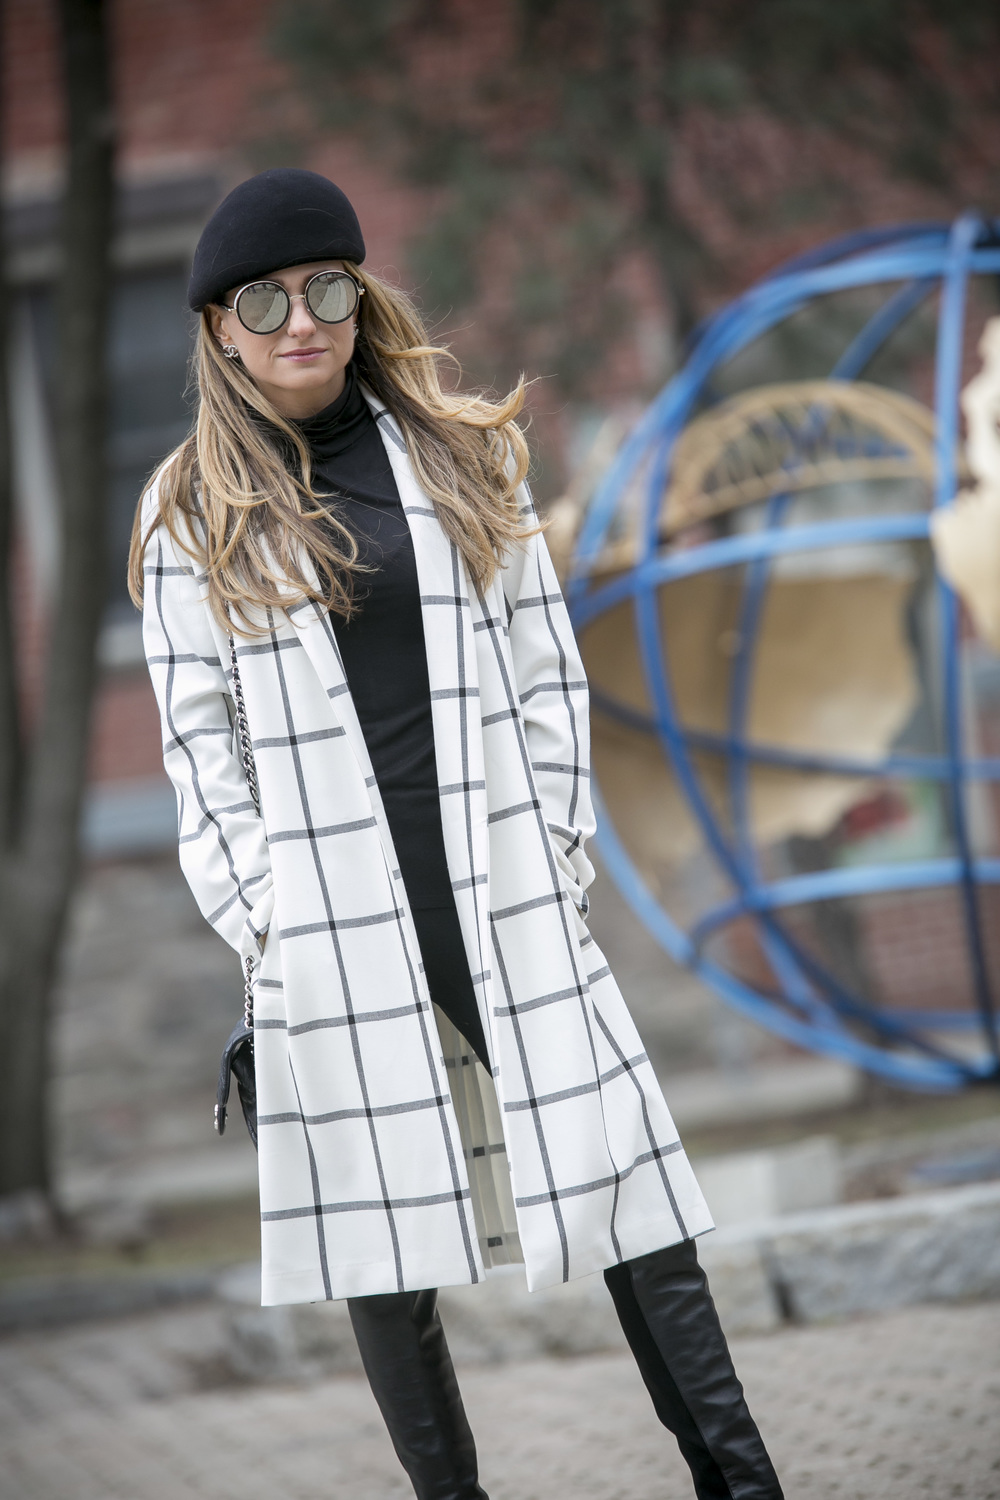 BB Dakota bronson jacket on blogger Lauren Recchia. Parisian chic.